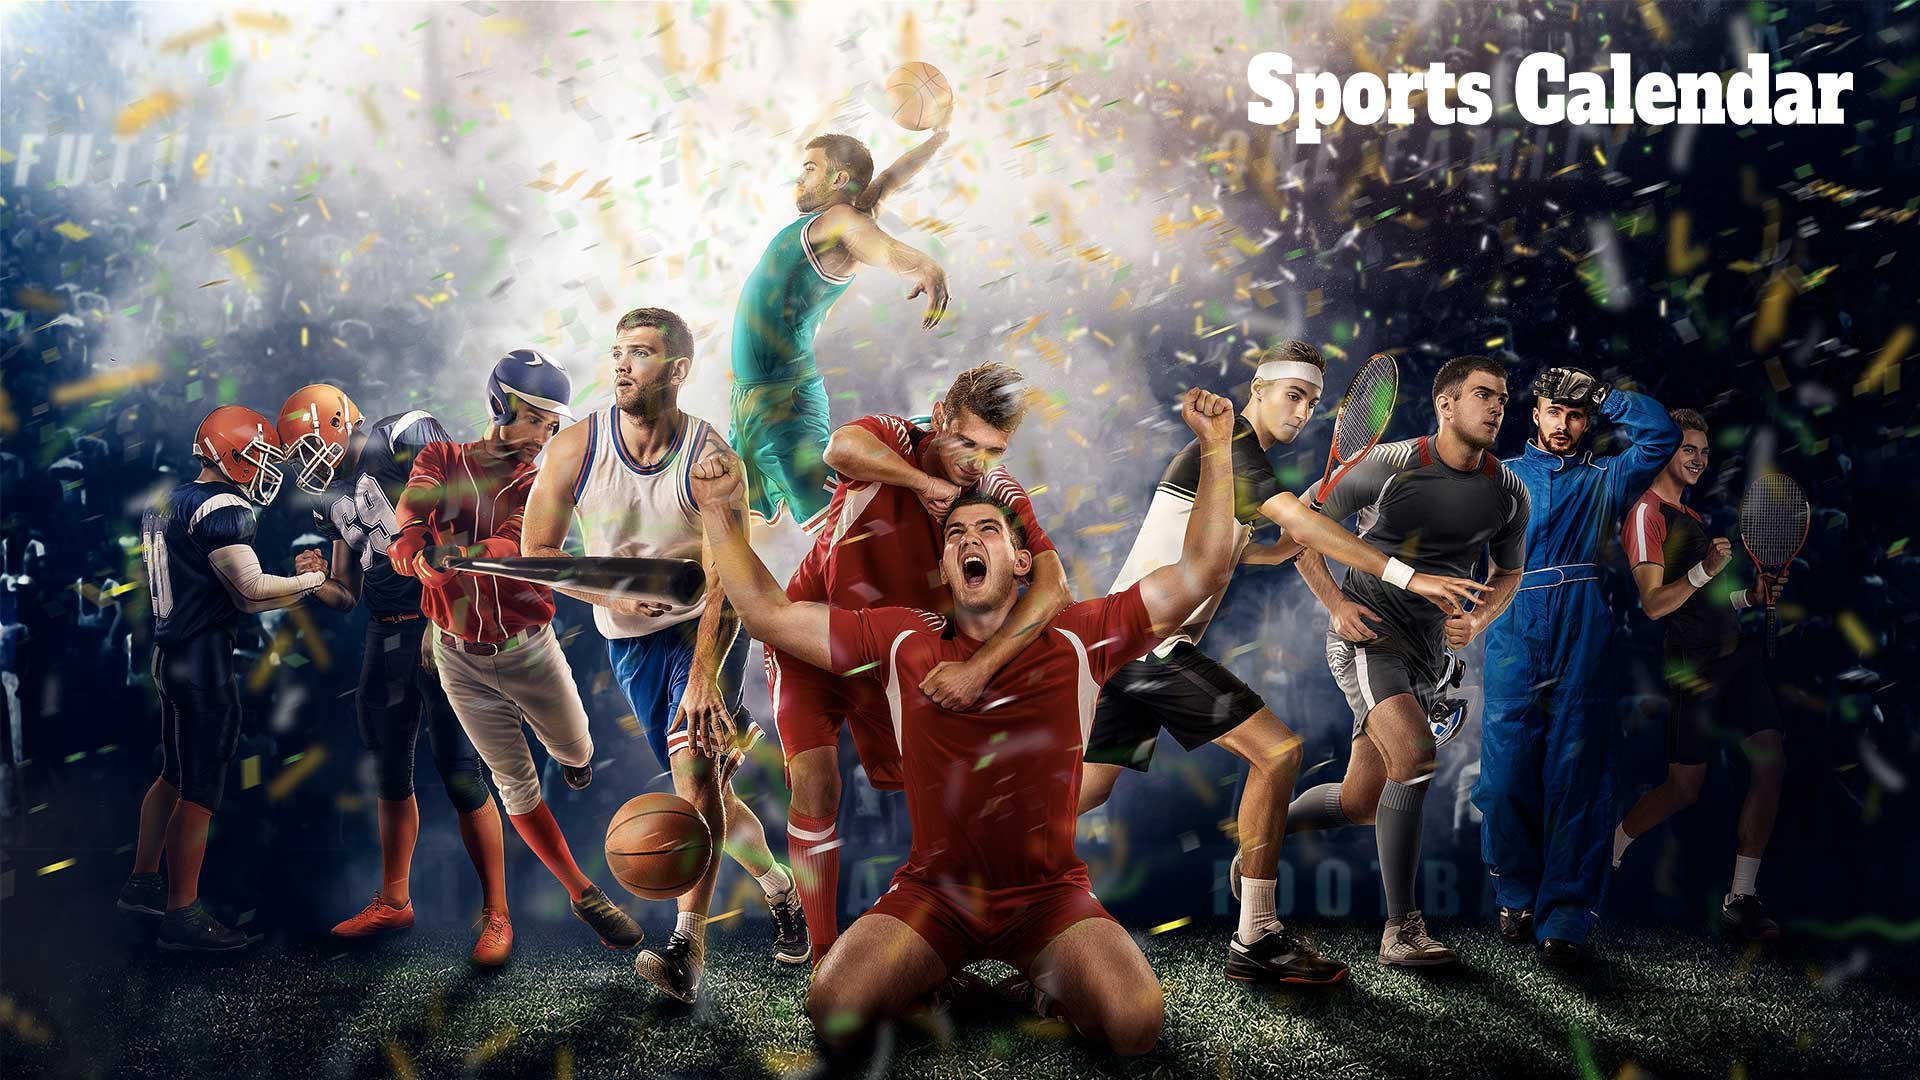 Where we'll be next? Our sports calendar is here